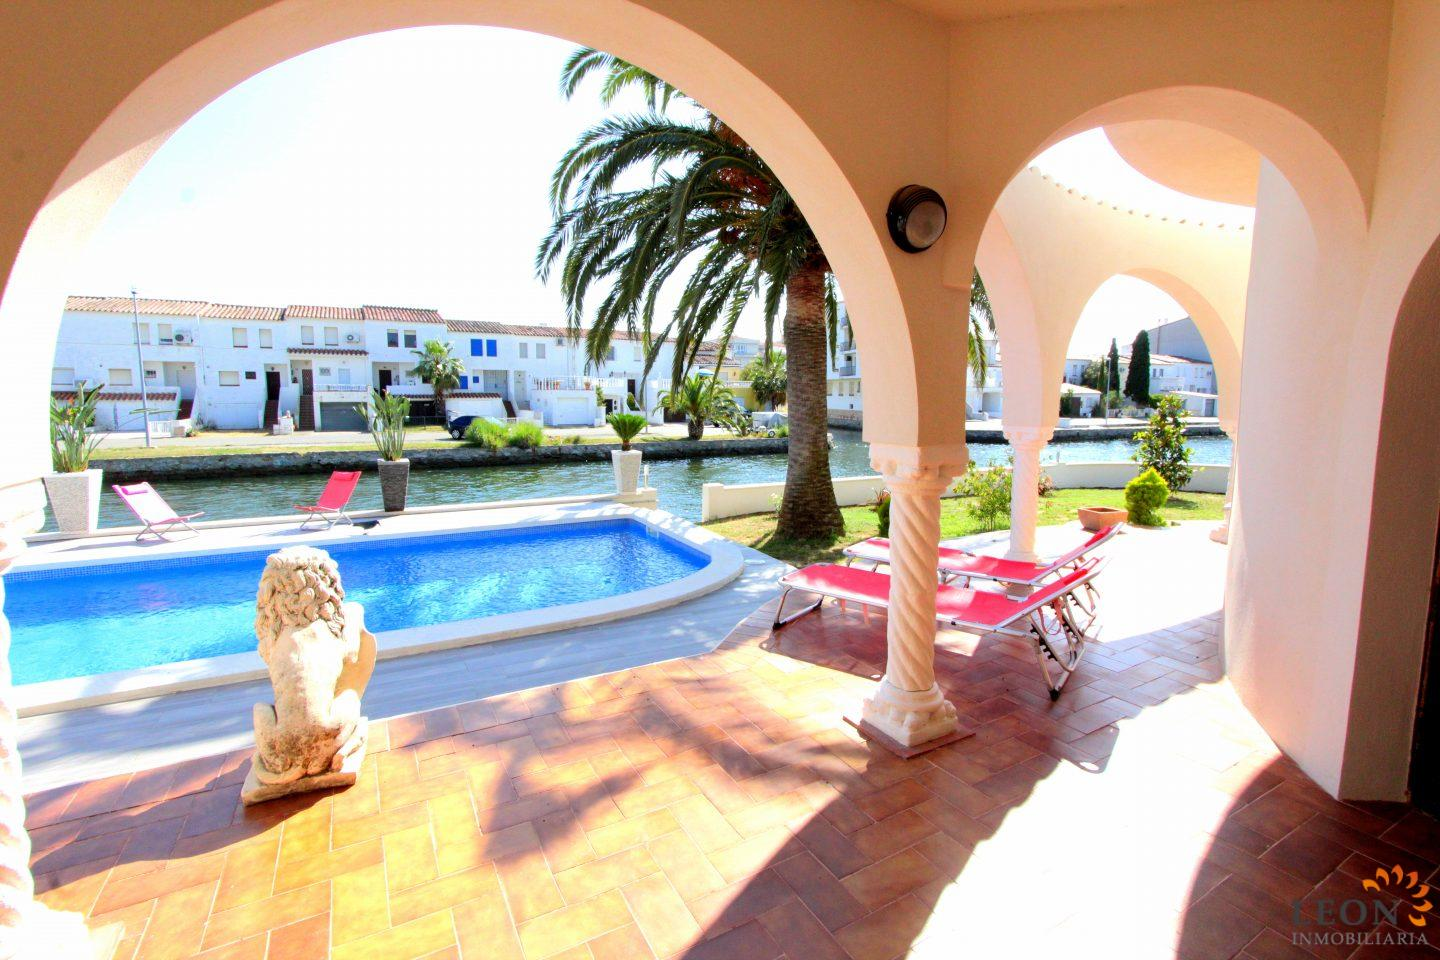 For Rent In Empuriabrava, Beautiful Hacienda Style Villa For 6 People With  Pool,